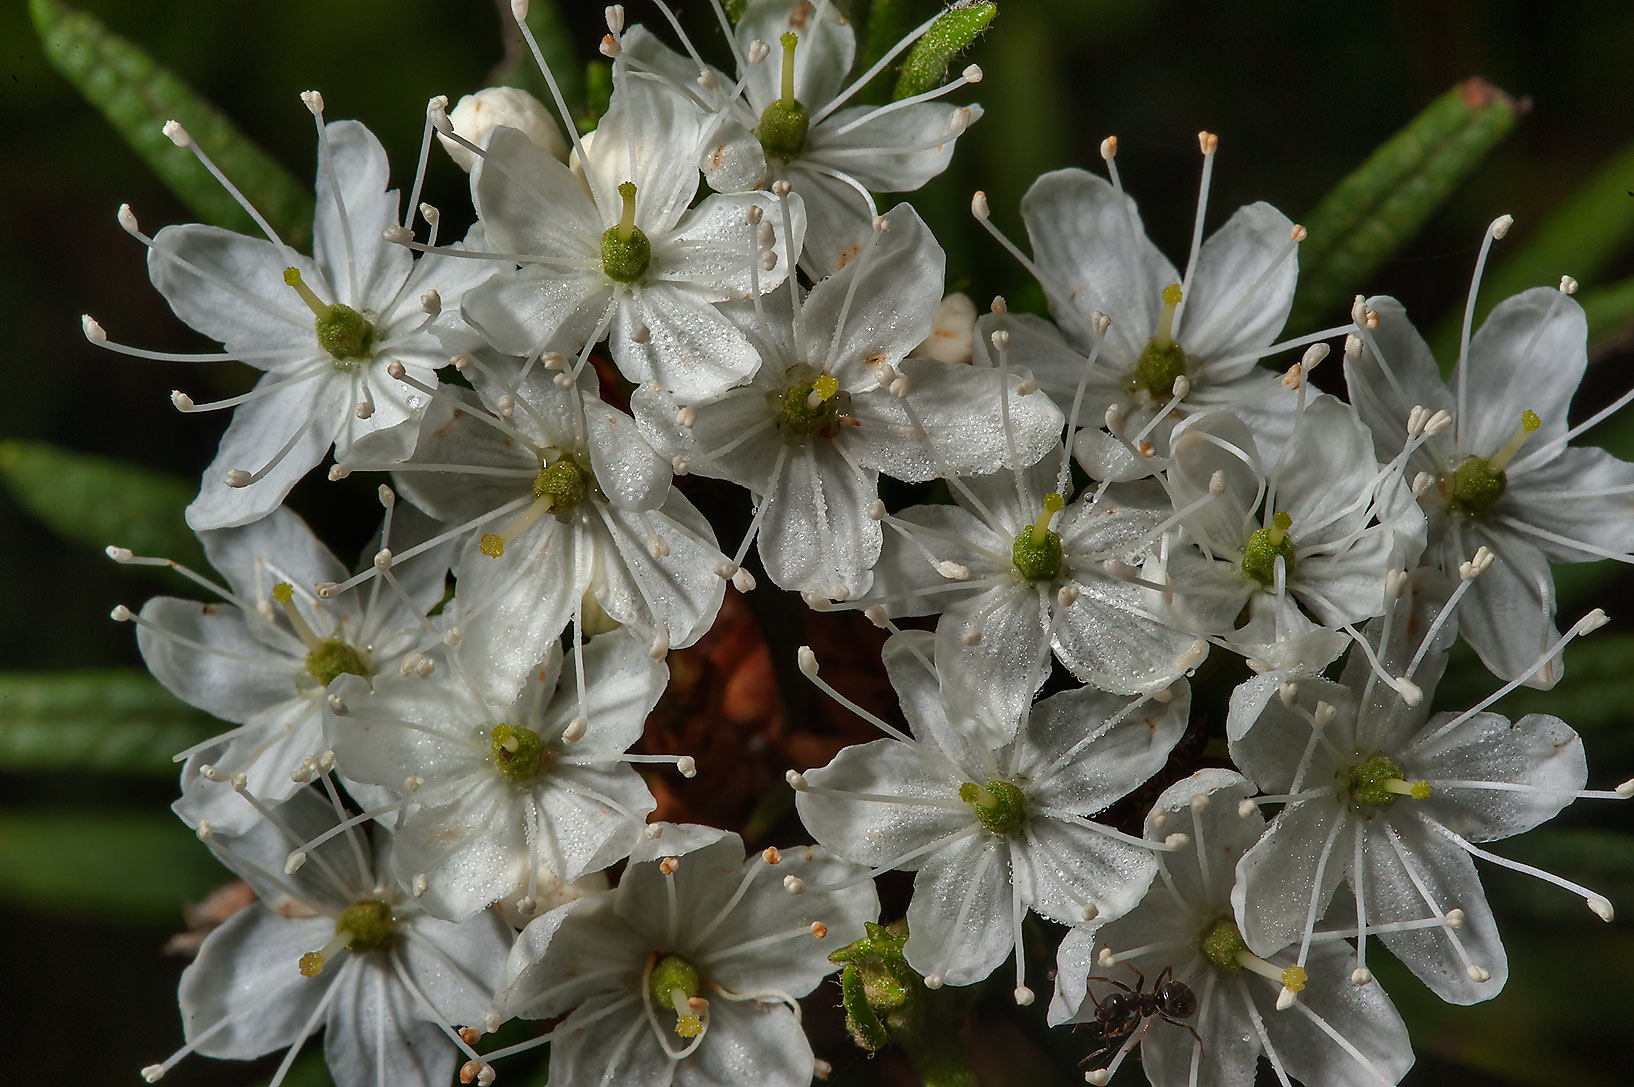 Flowers of Labrador Tea (Ledum palustre) near...north from St.Petersburg. Russia